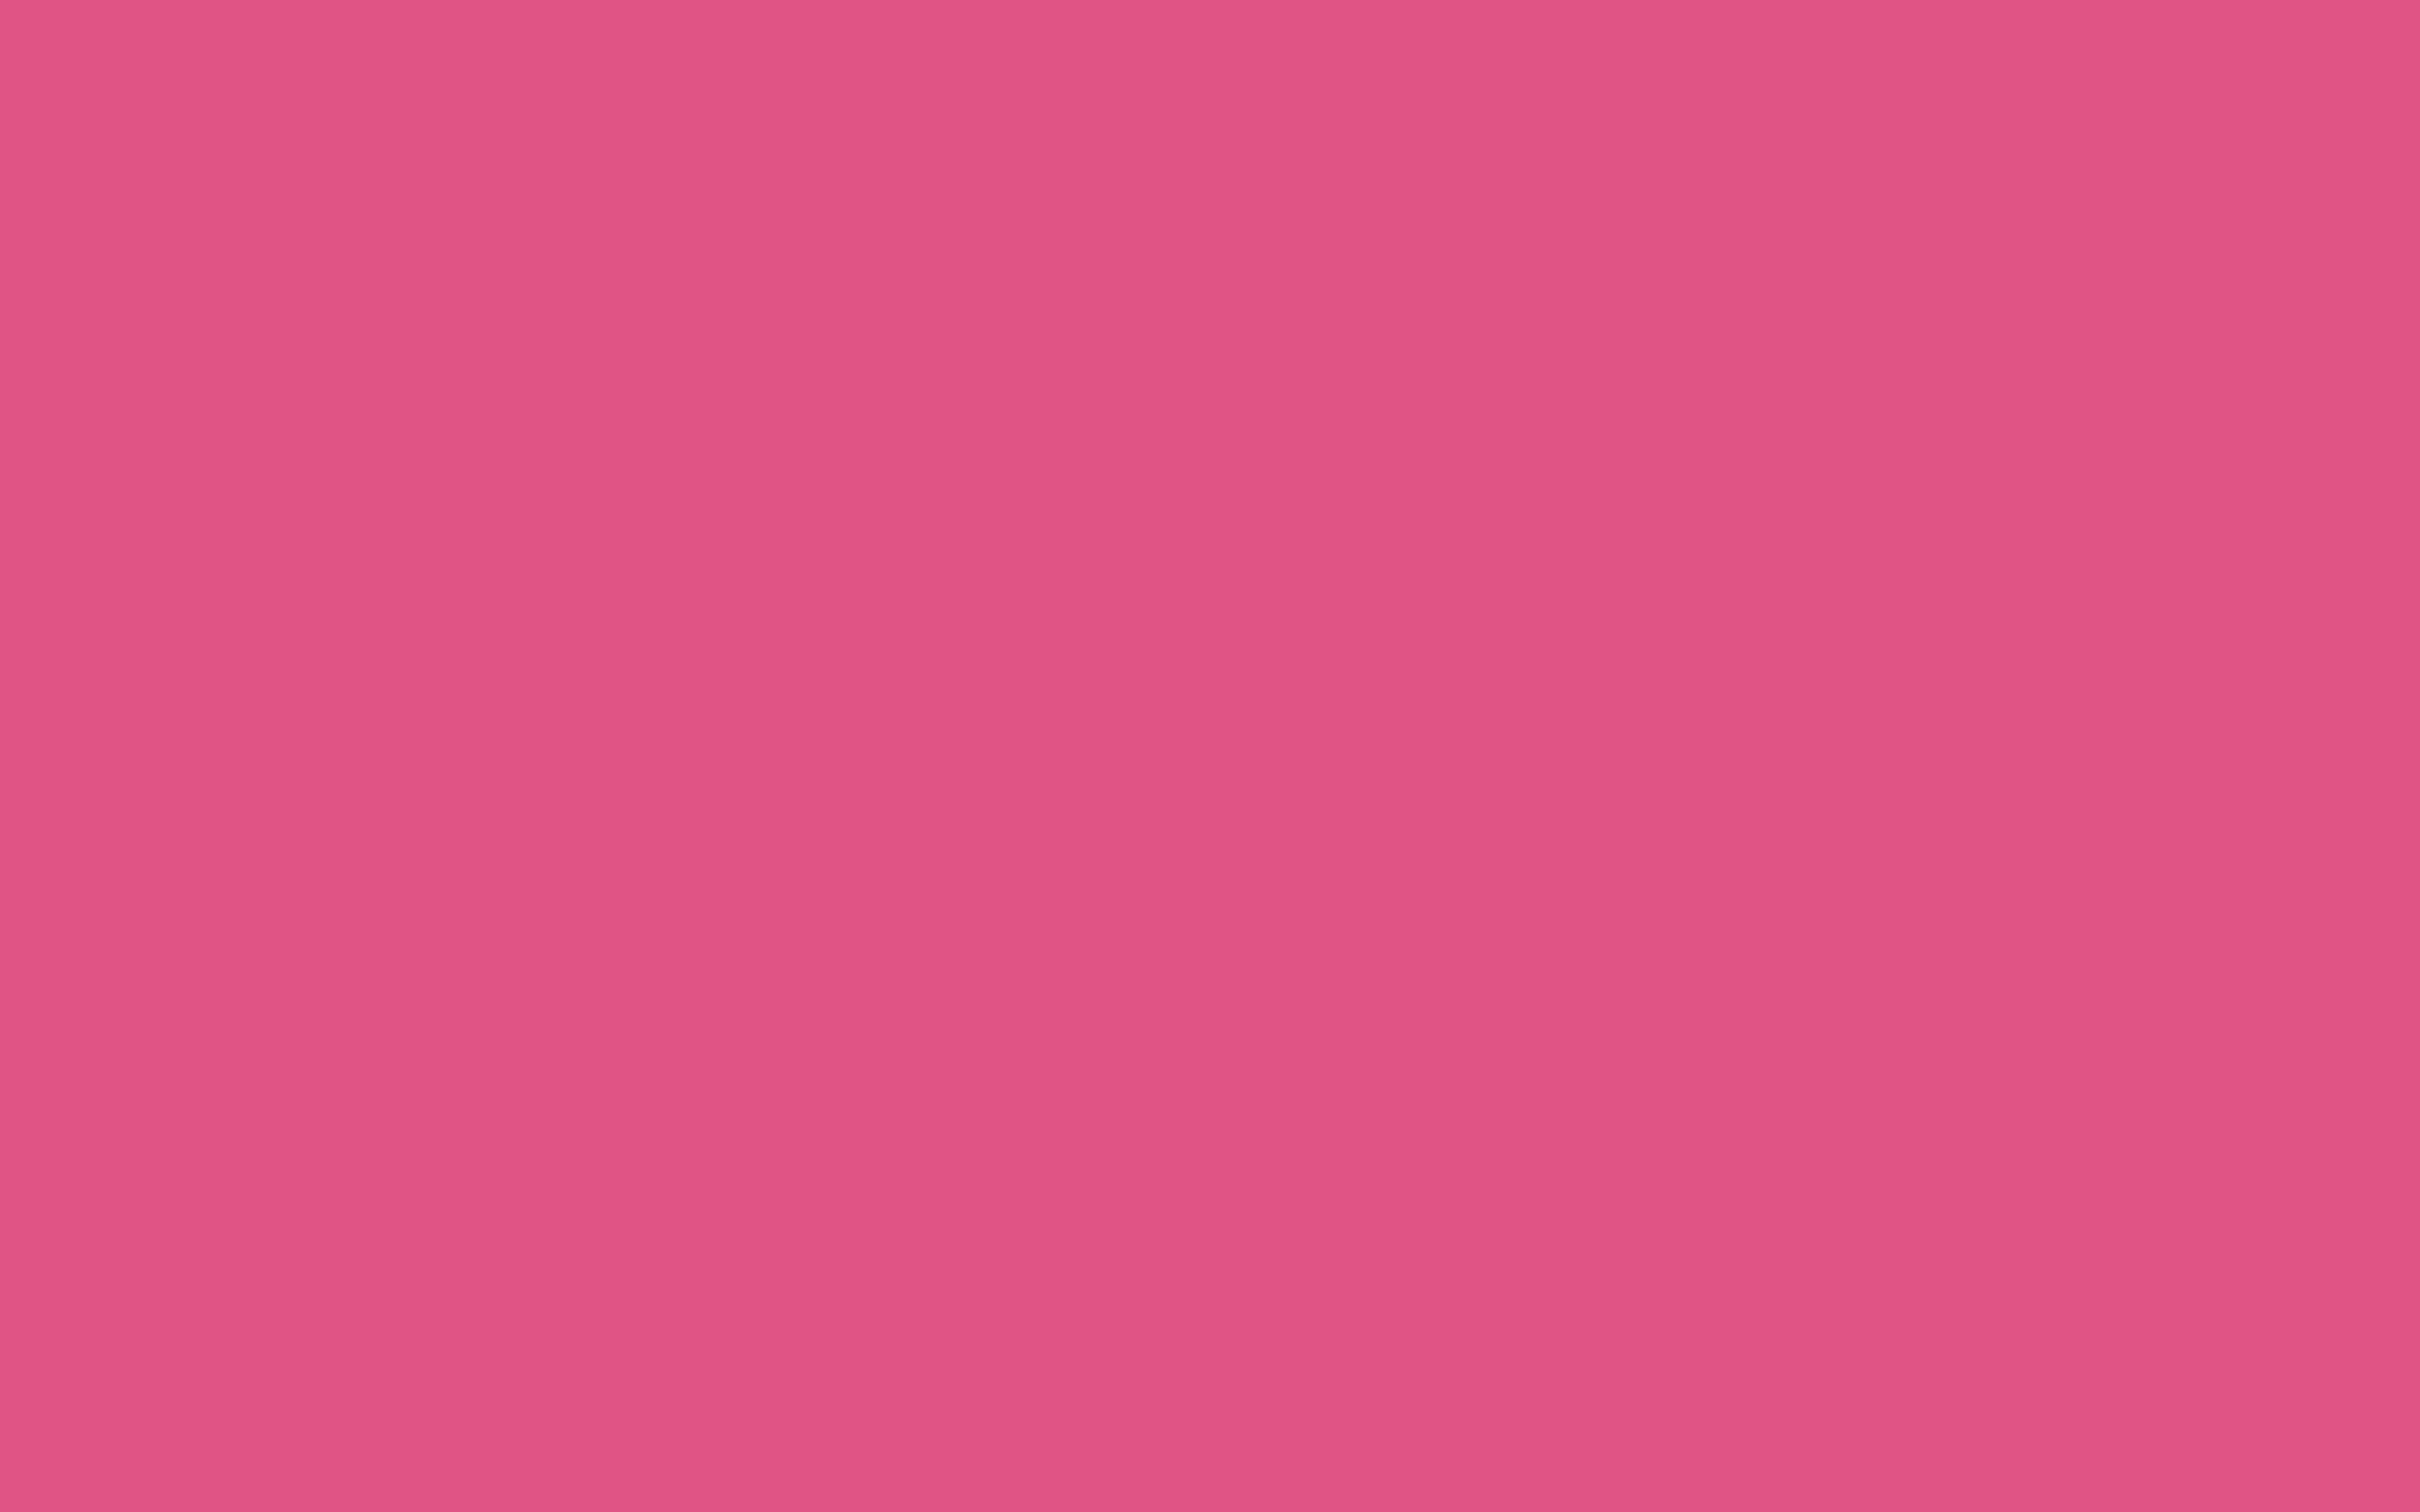 2560x1600 Fandango Pink Solid Color Background